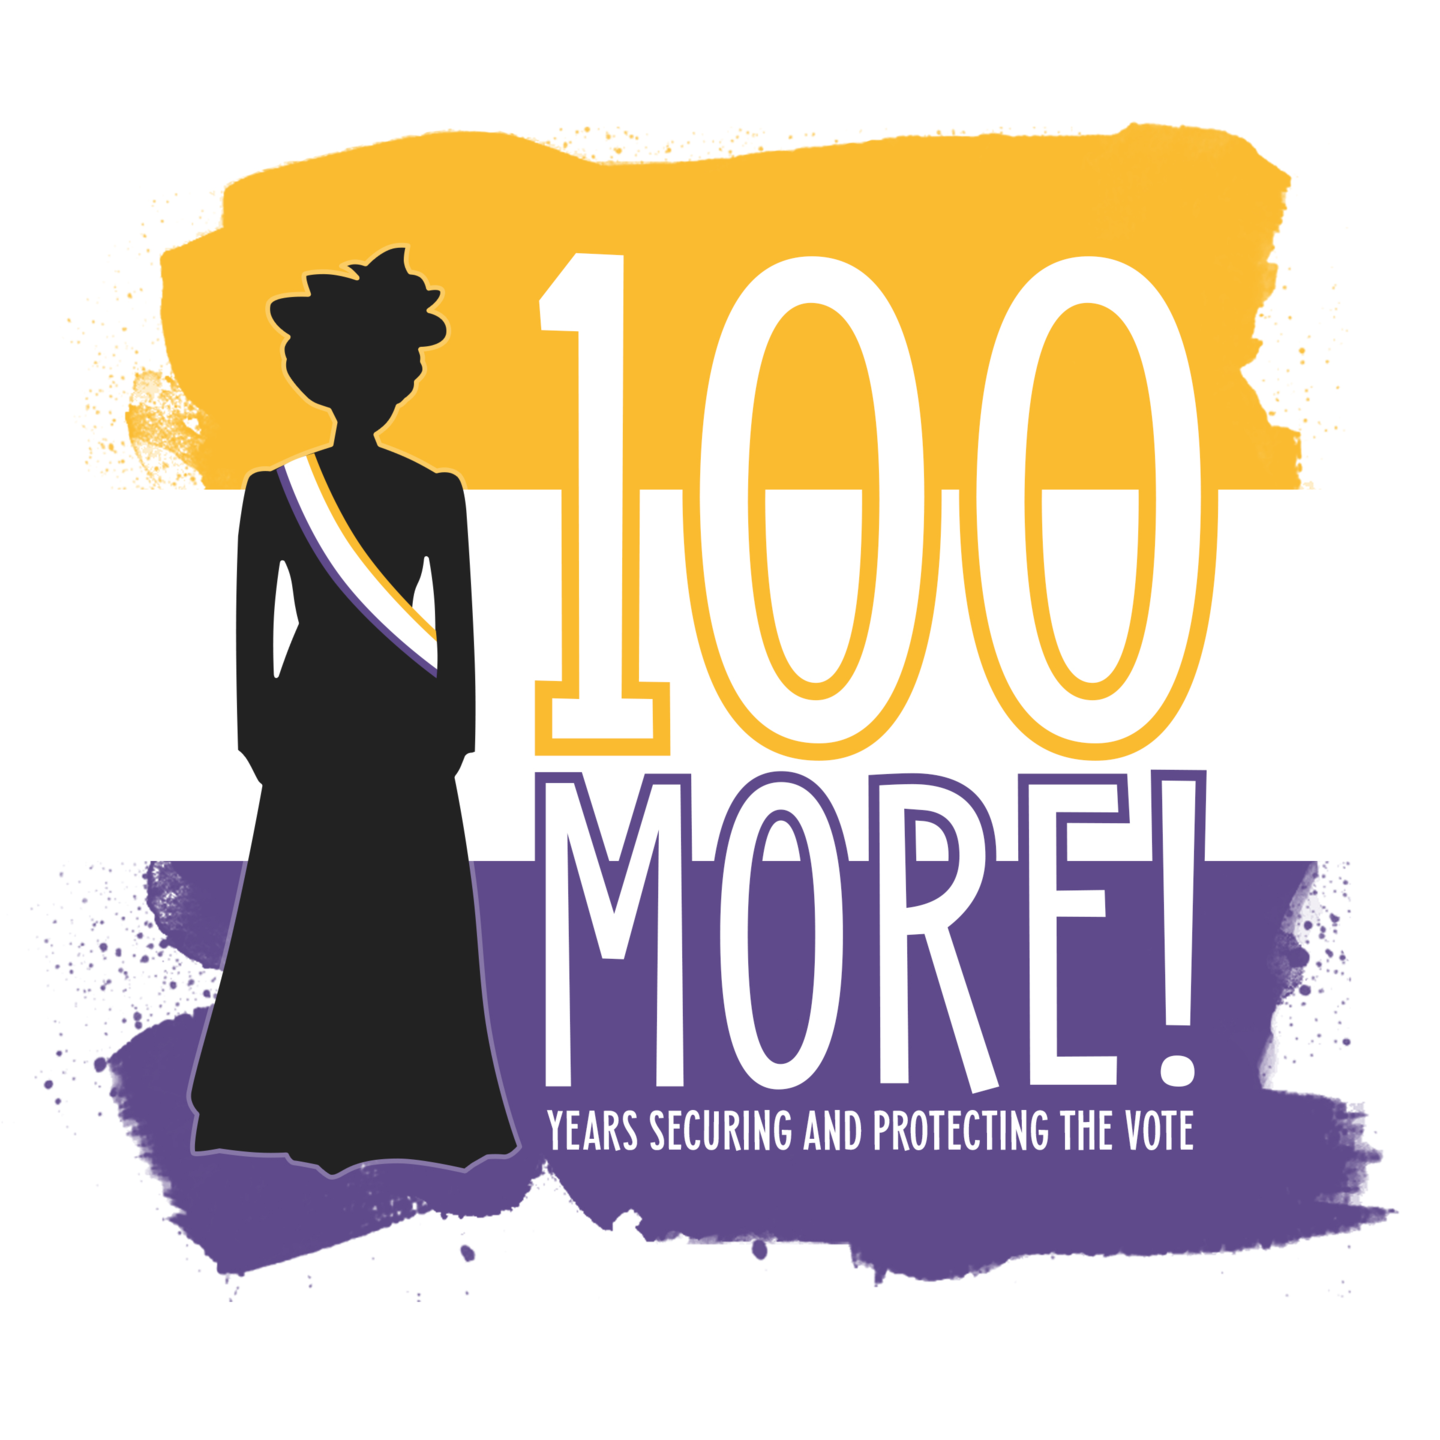 100 More years securing and protecting the vote suffragist graphic